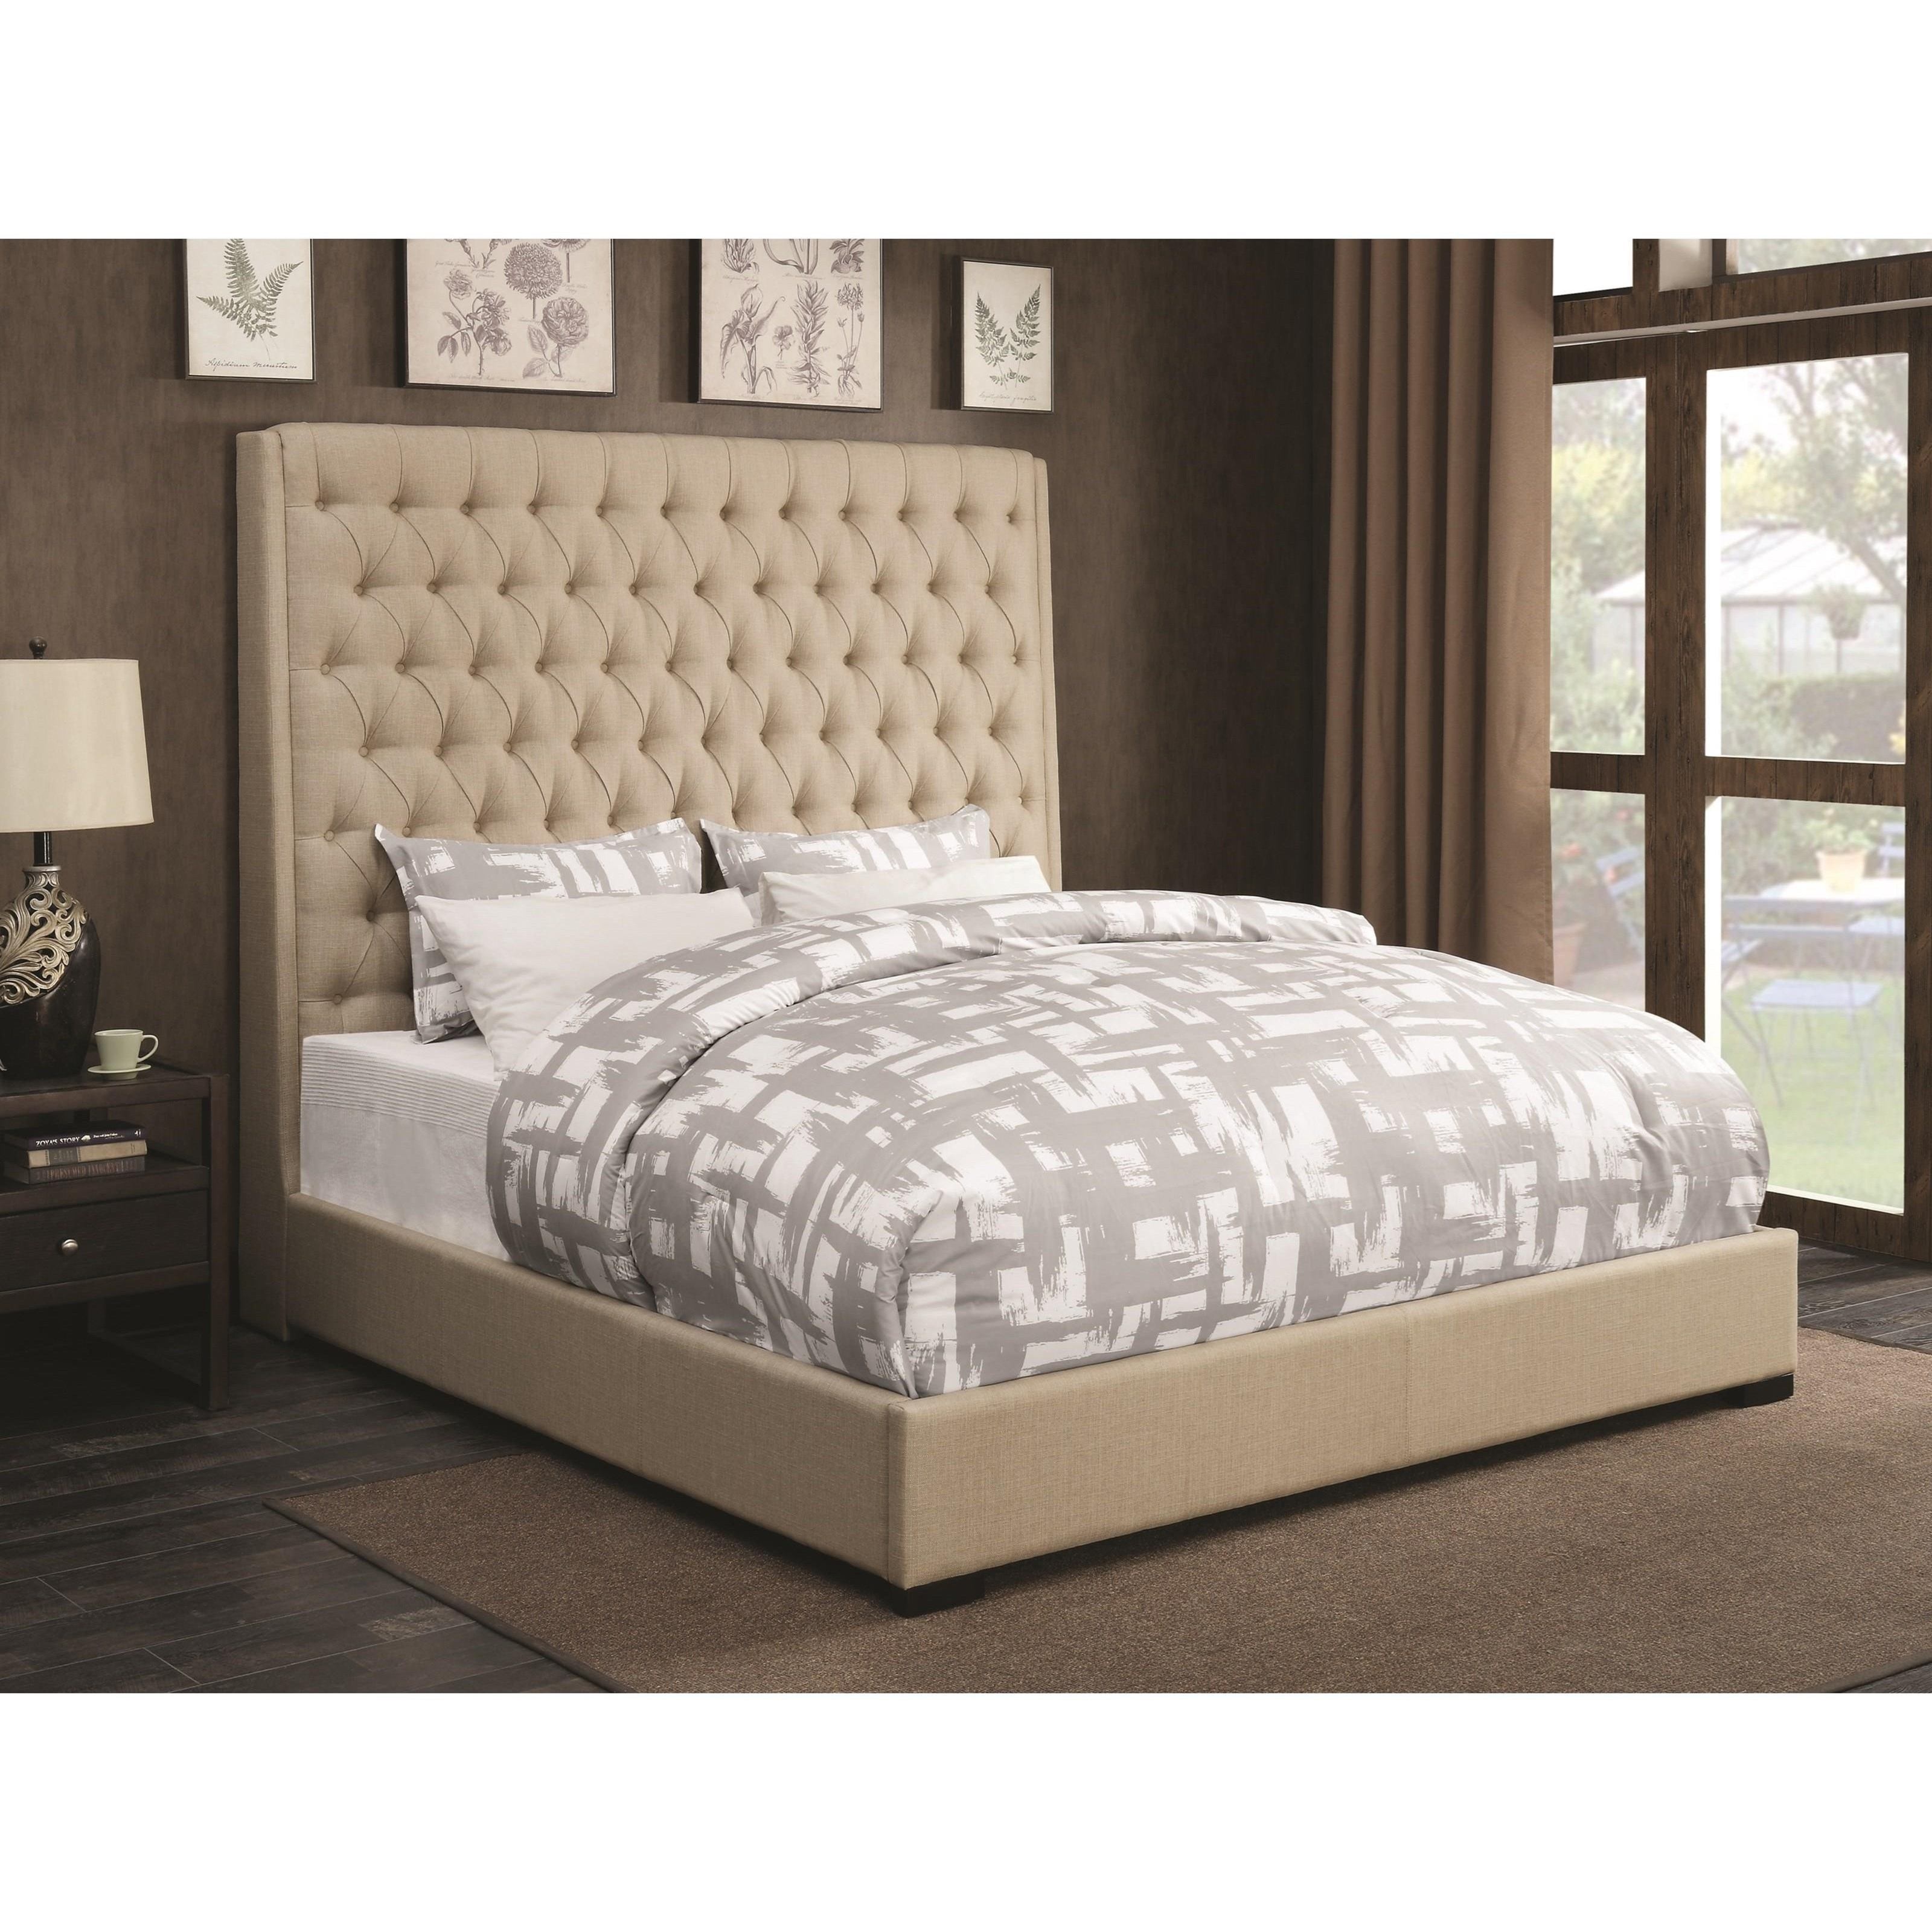 Upholstered Beds Upholstered California King Bed With Diamond Tufting By  Coaster